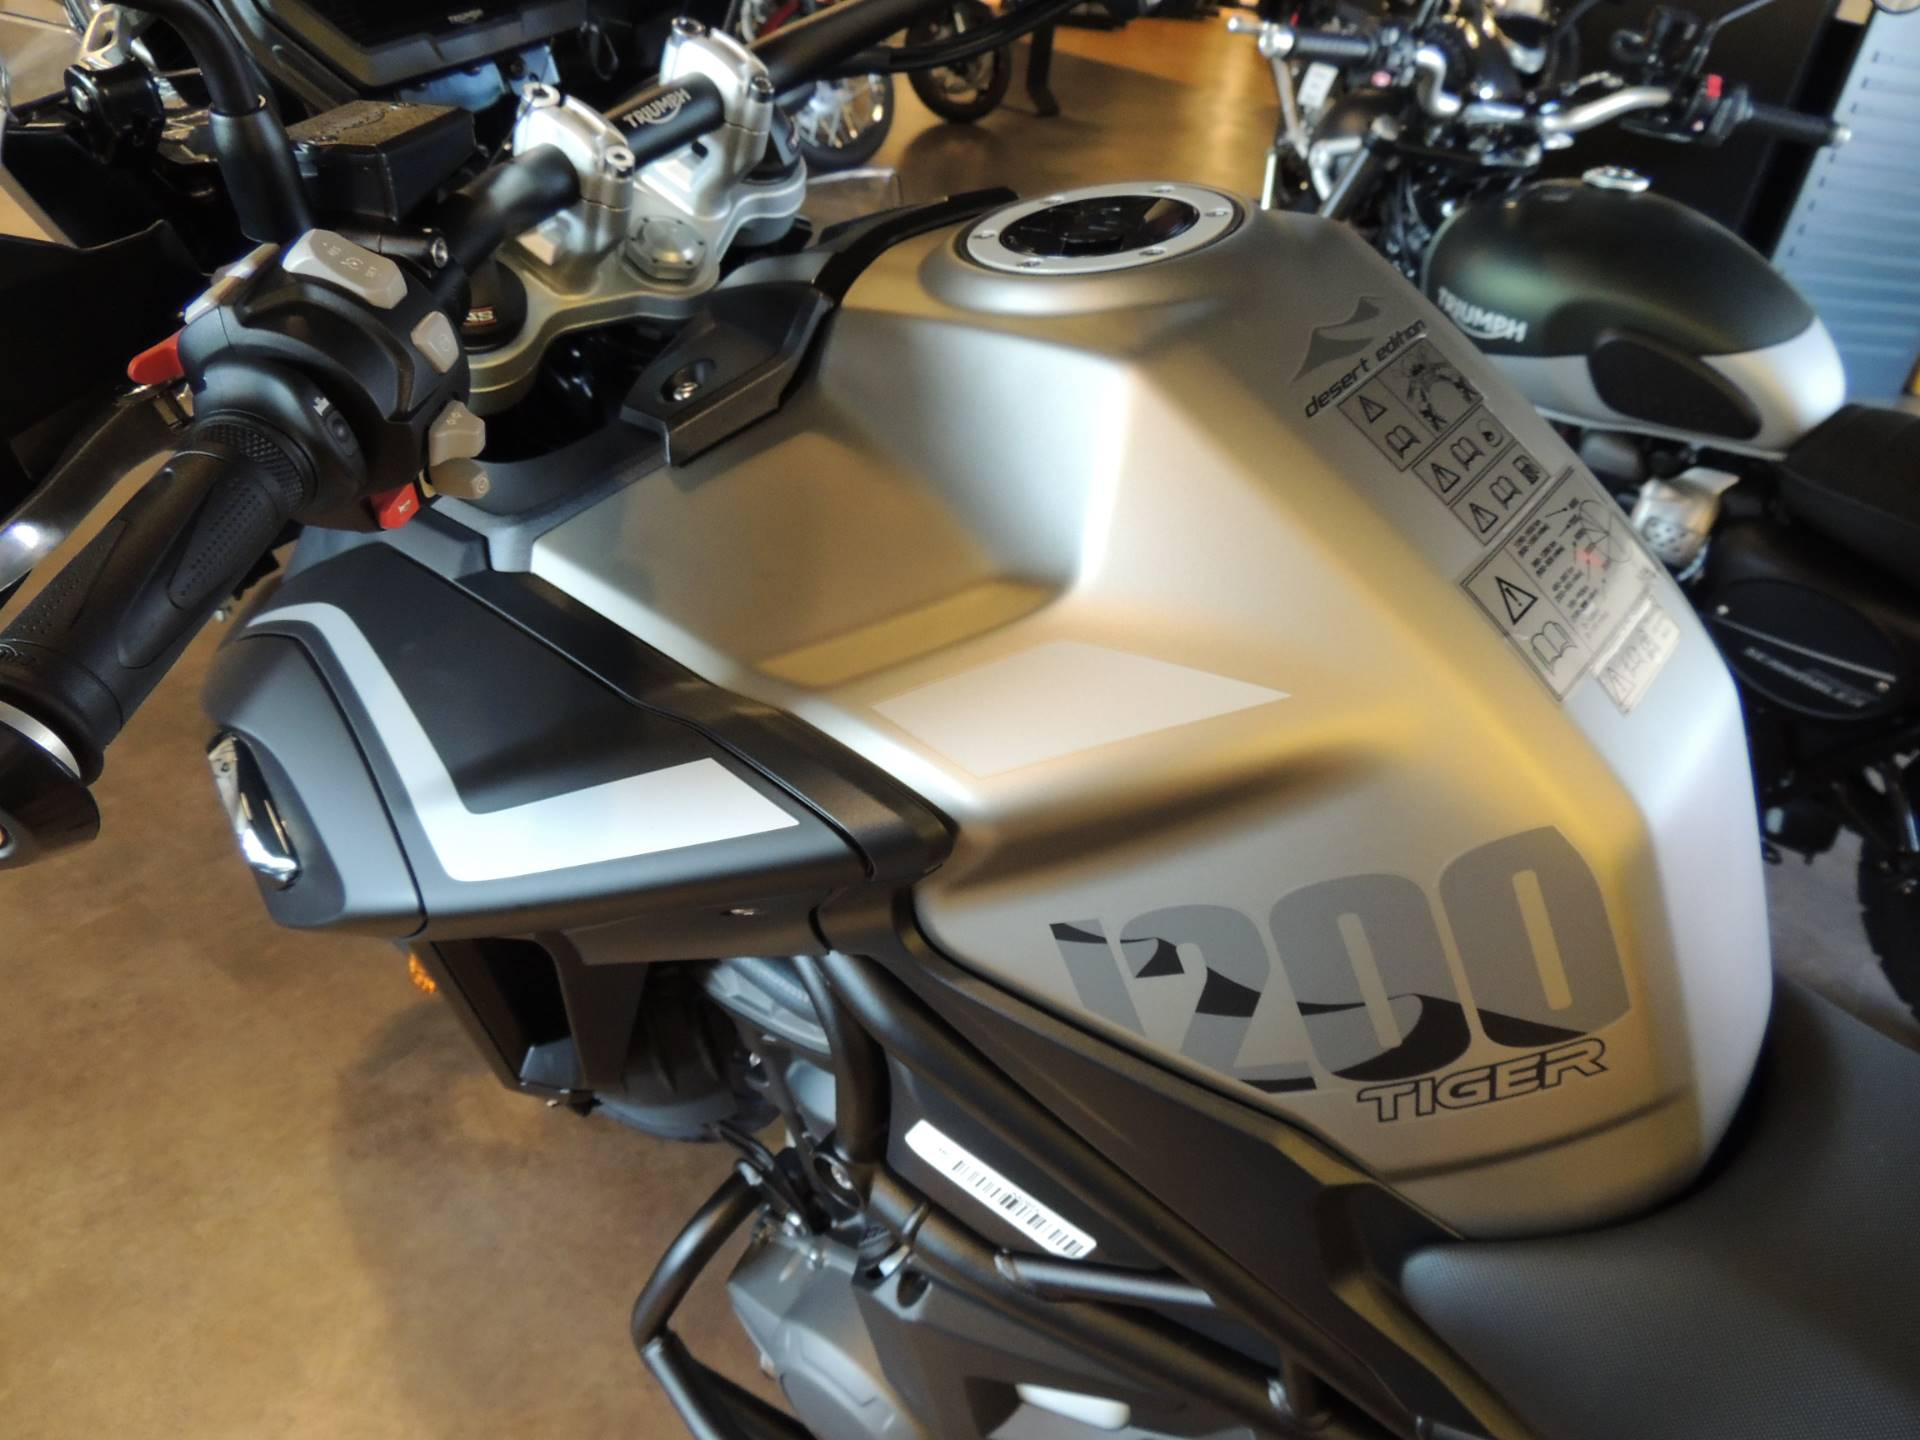 2020 Triumph Tiger 1200 Desert Edition in Shelby Township, Michigan - Photo 10